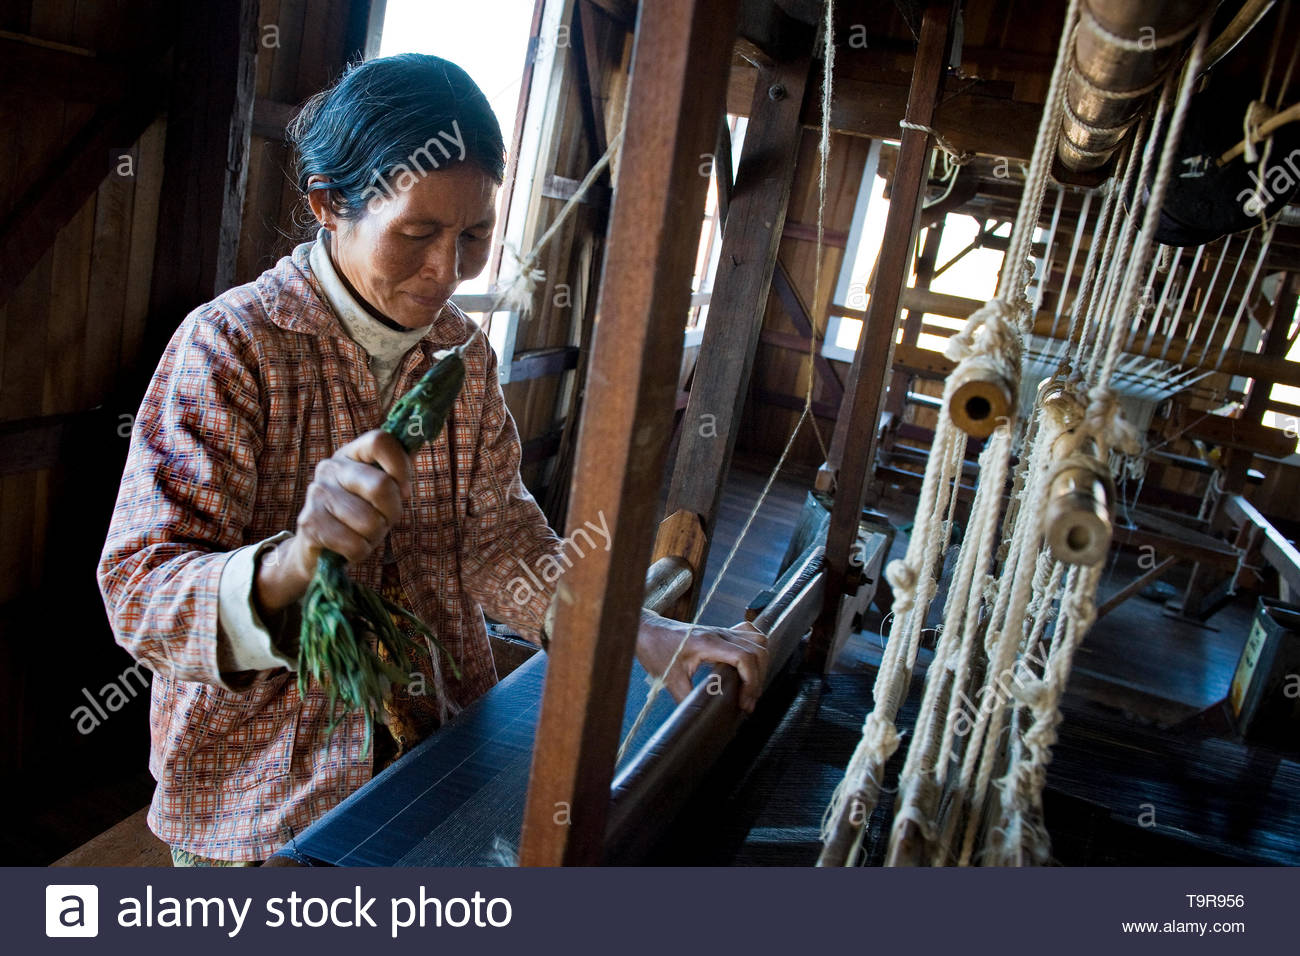 Myanmar, Inle lake, weaving - Stock Image